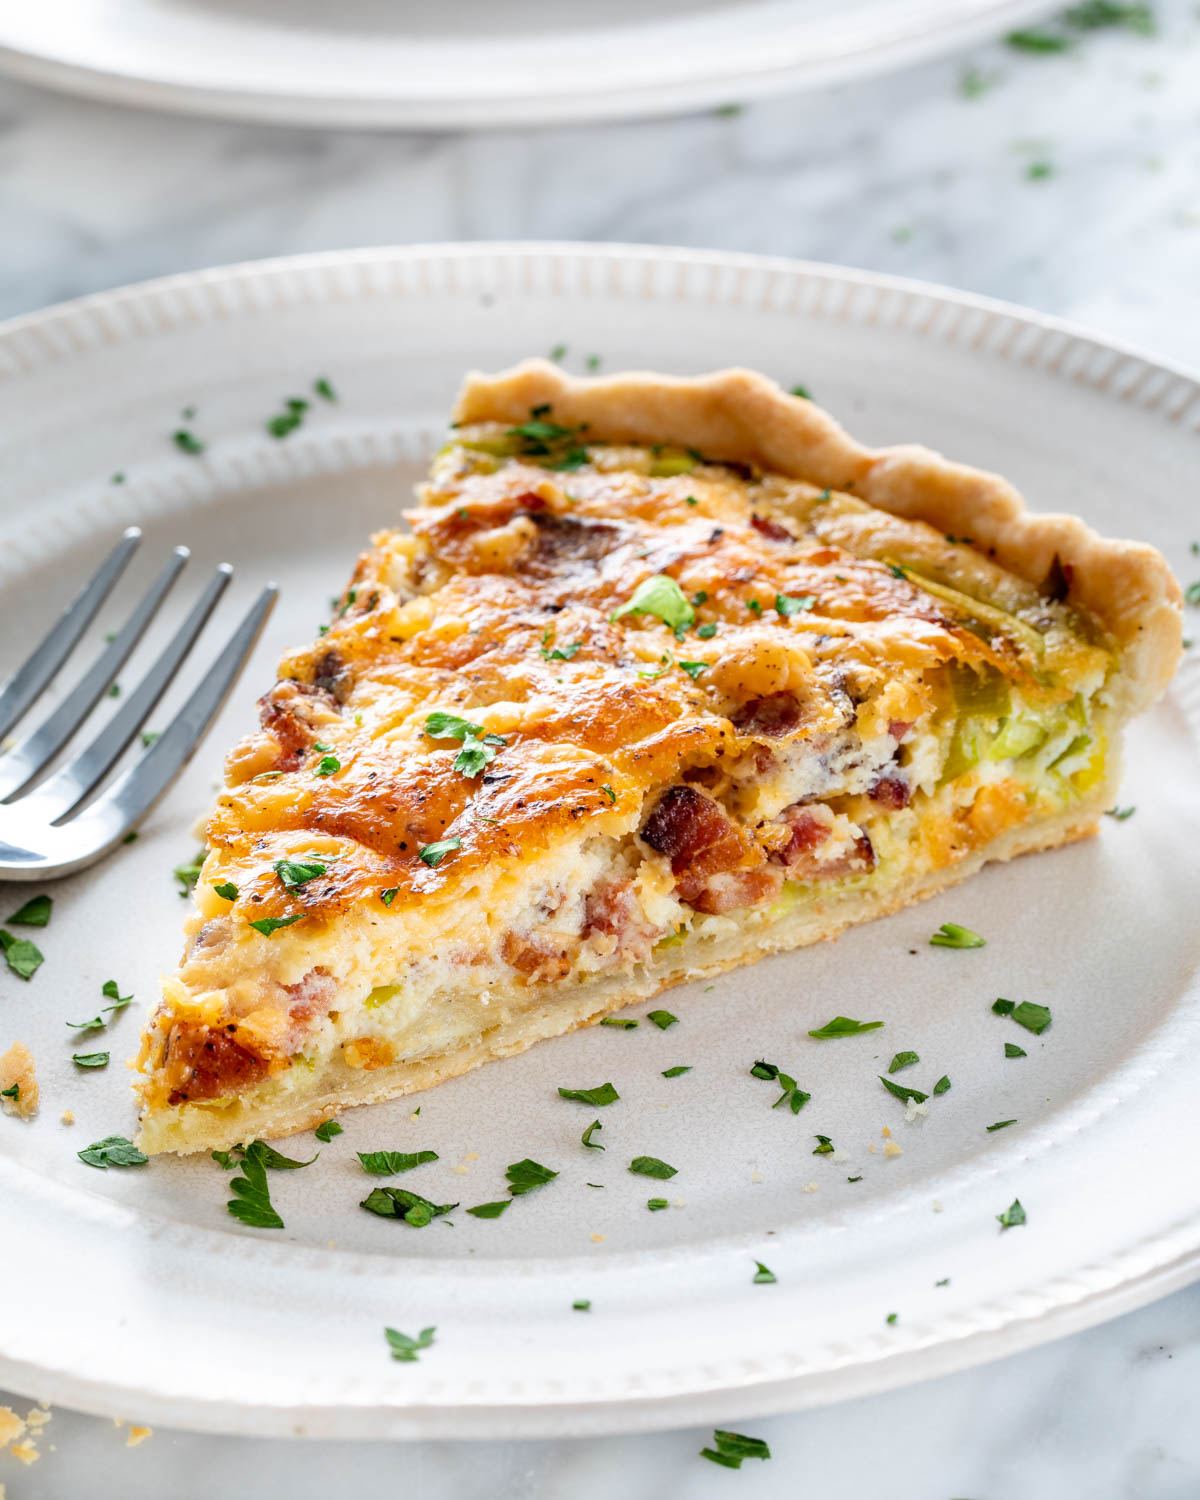 a slice of quiche on a white plate garnished with parsley